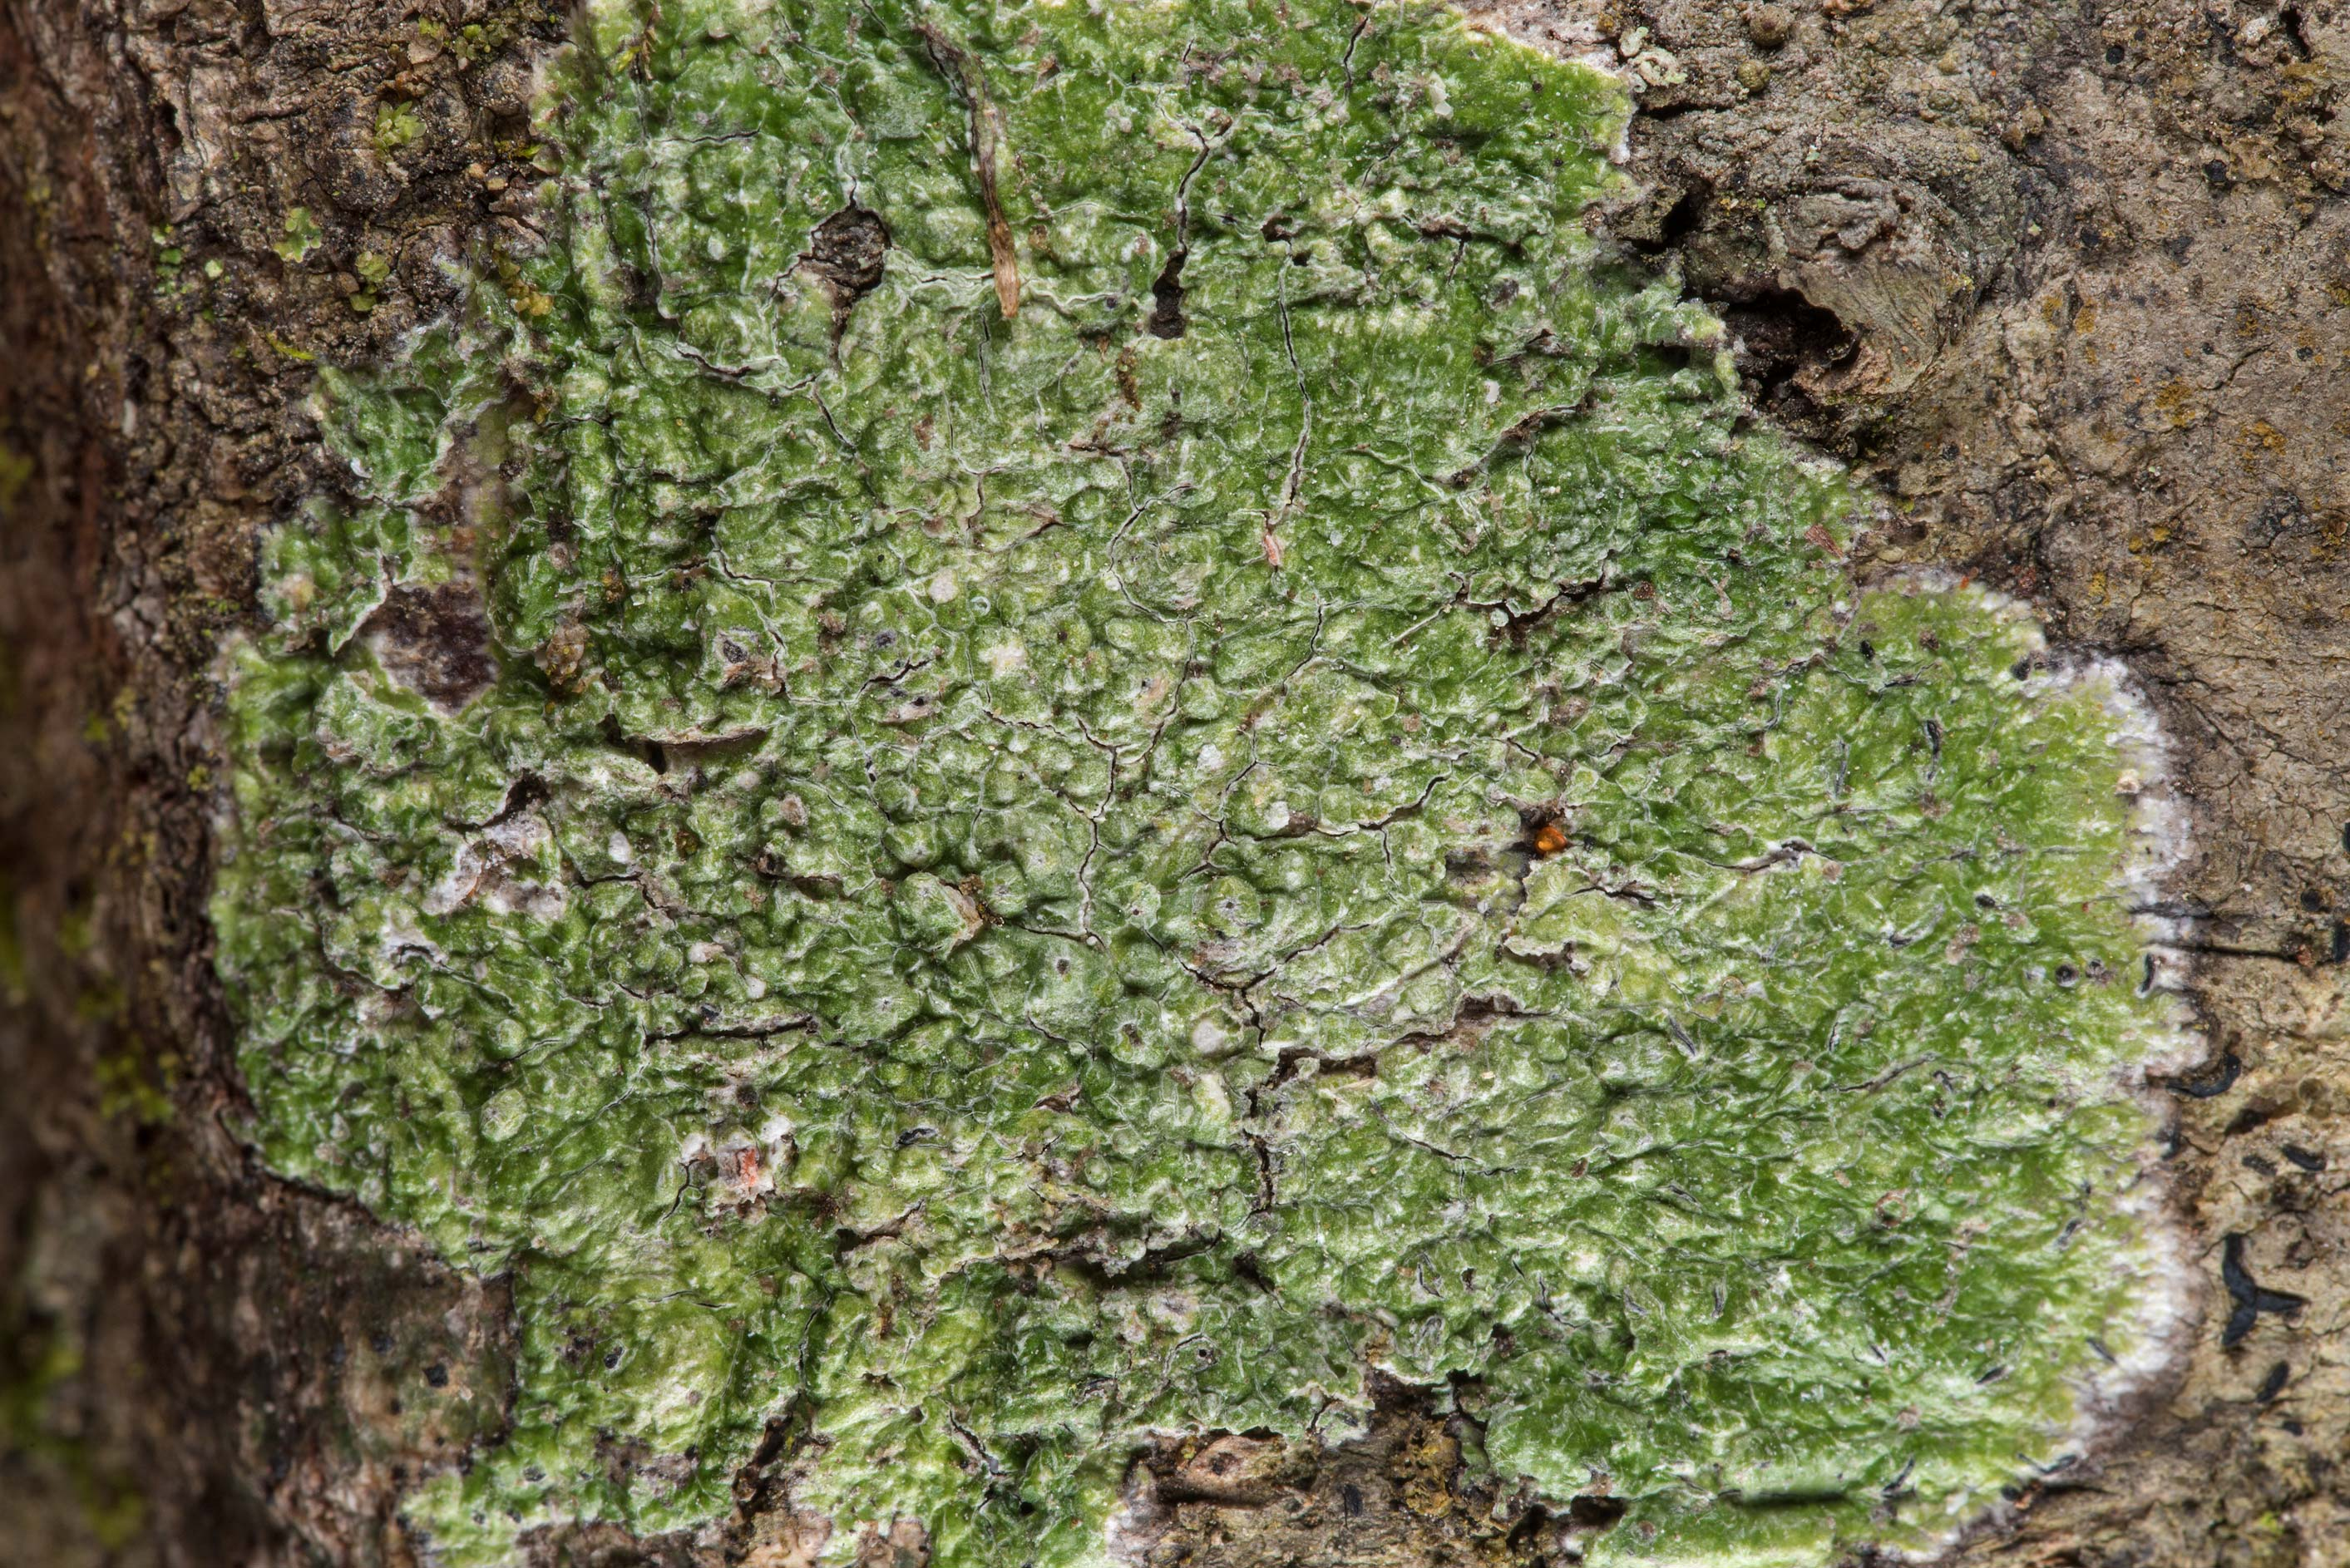 Green crustose lichen Pertusaria on Caney Creek...National Forest near Huntsville. Texas